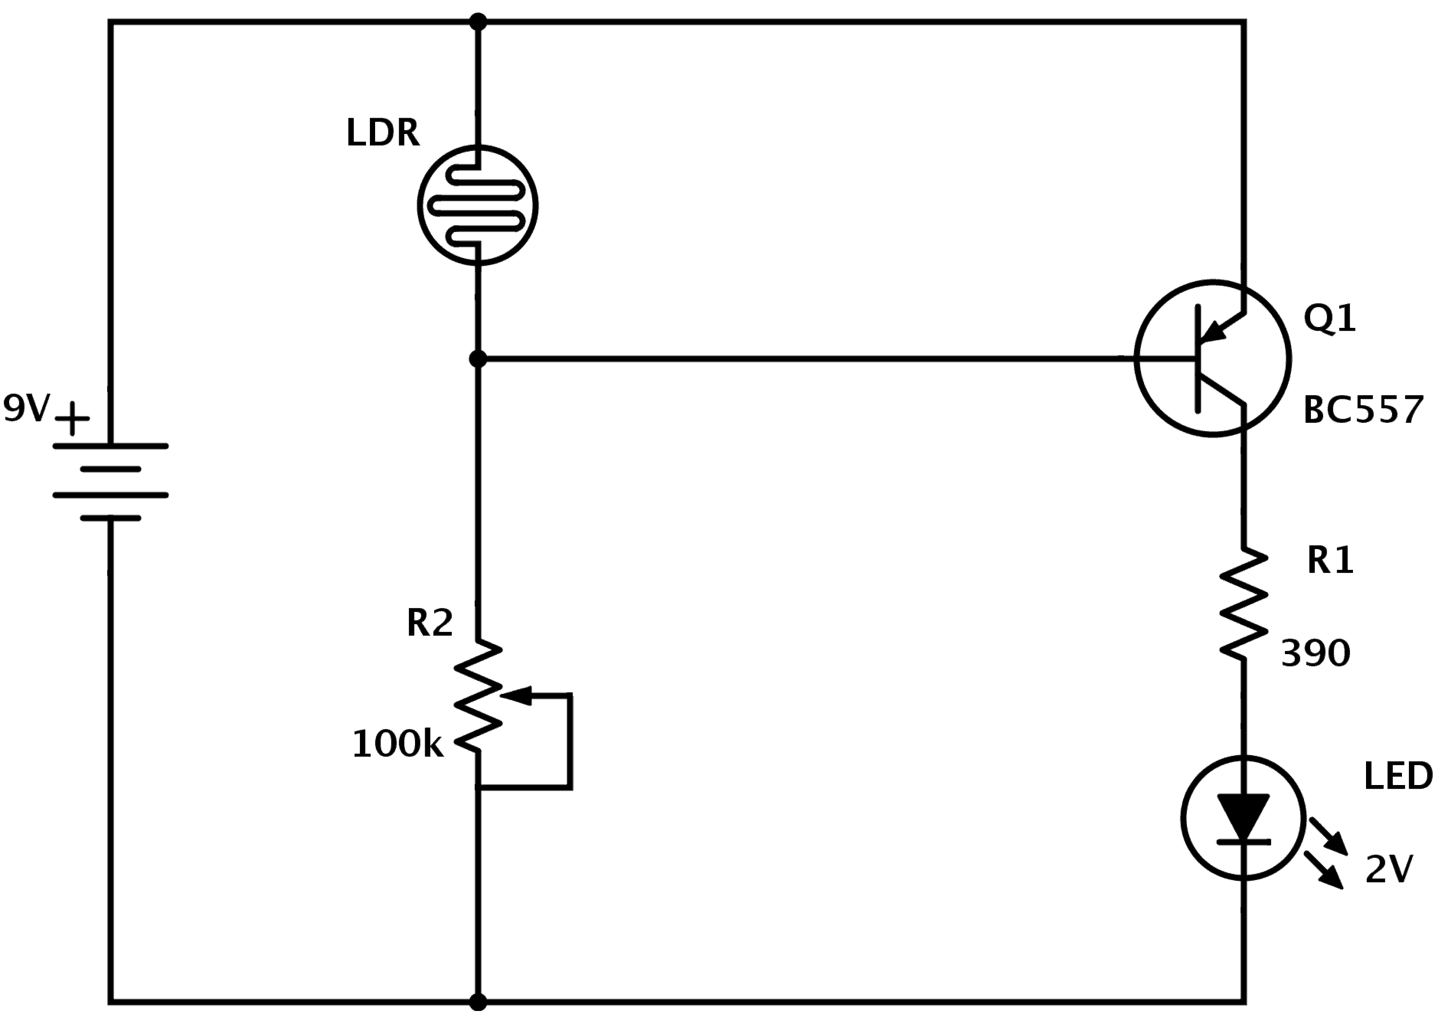 LDR circuit diagram with PNP transistor (dark detector)